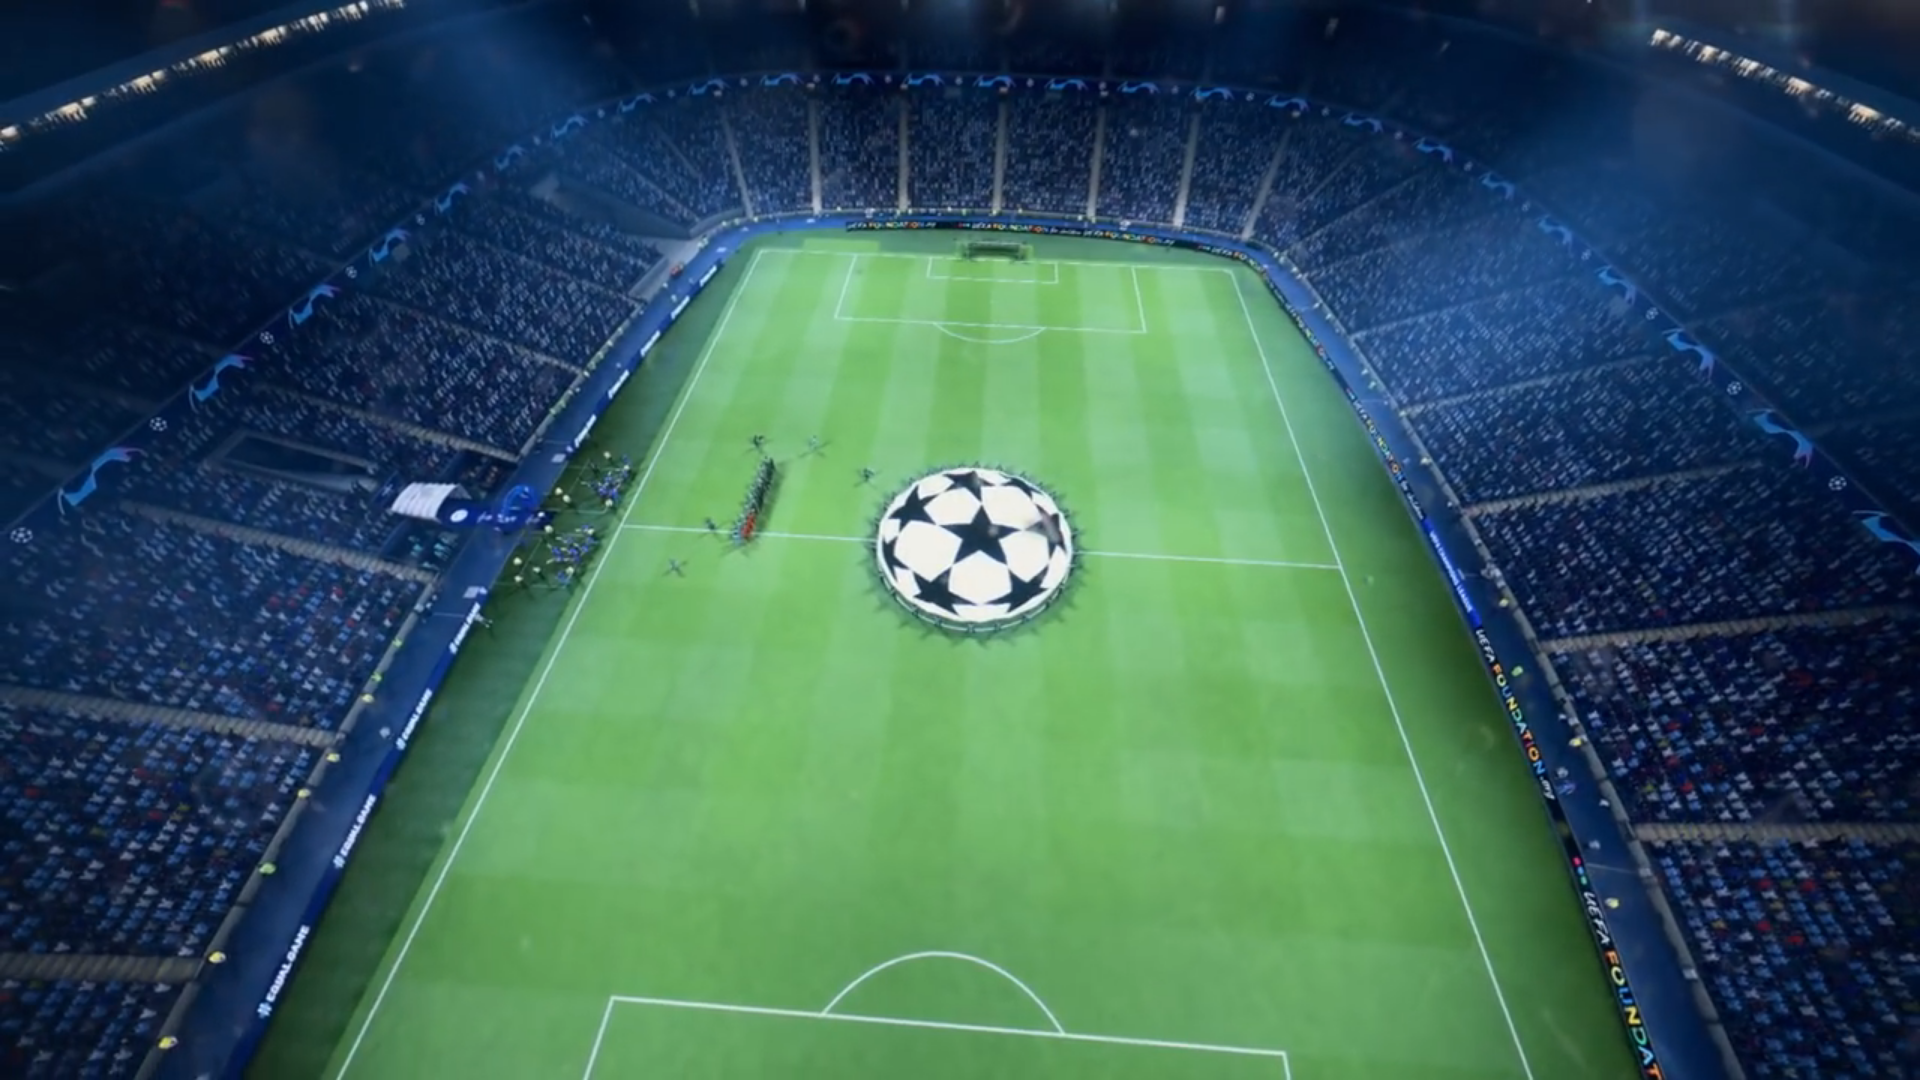 Champions League FIFA 19 game footage